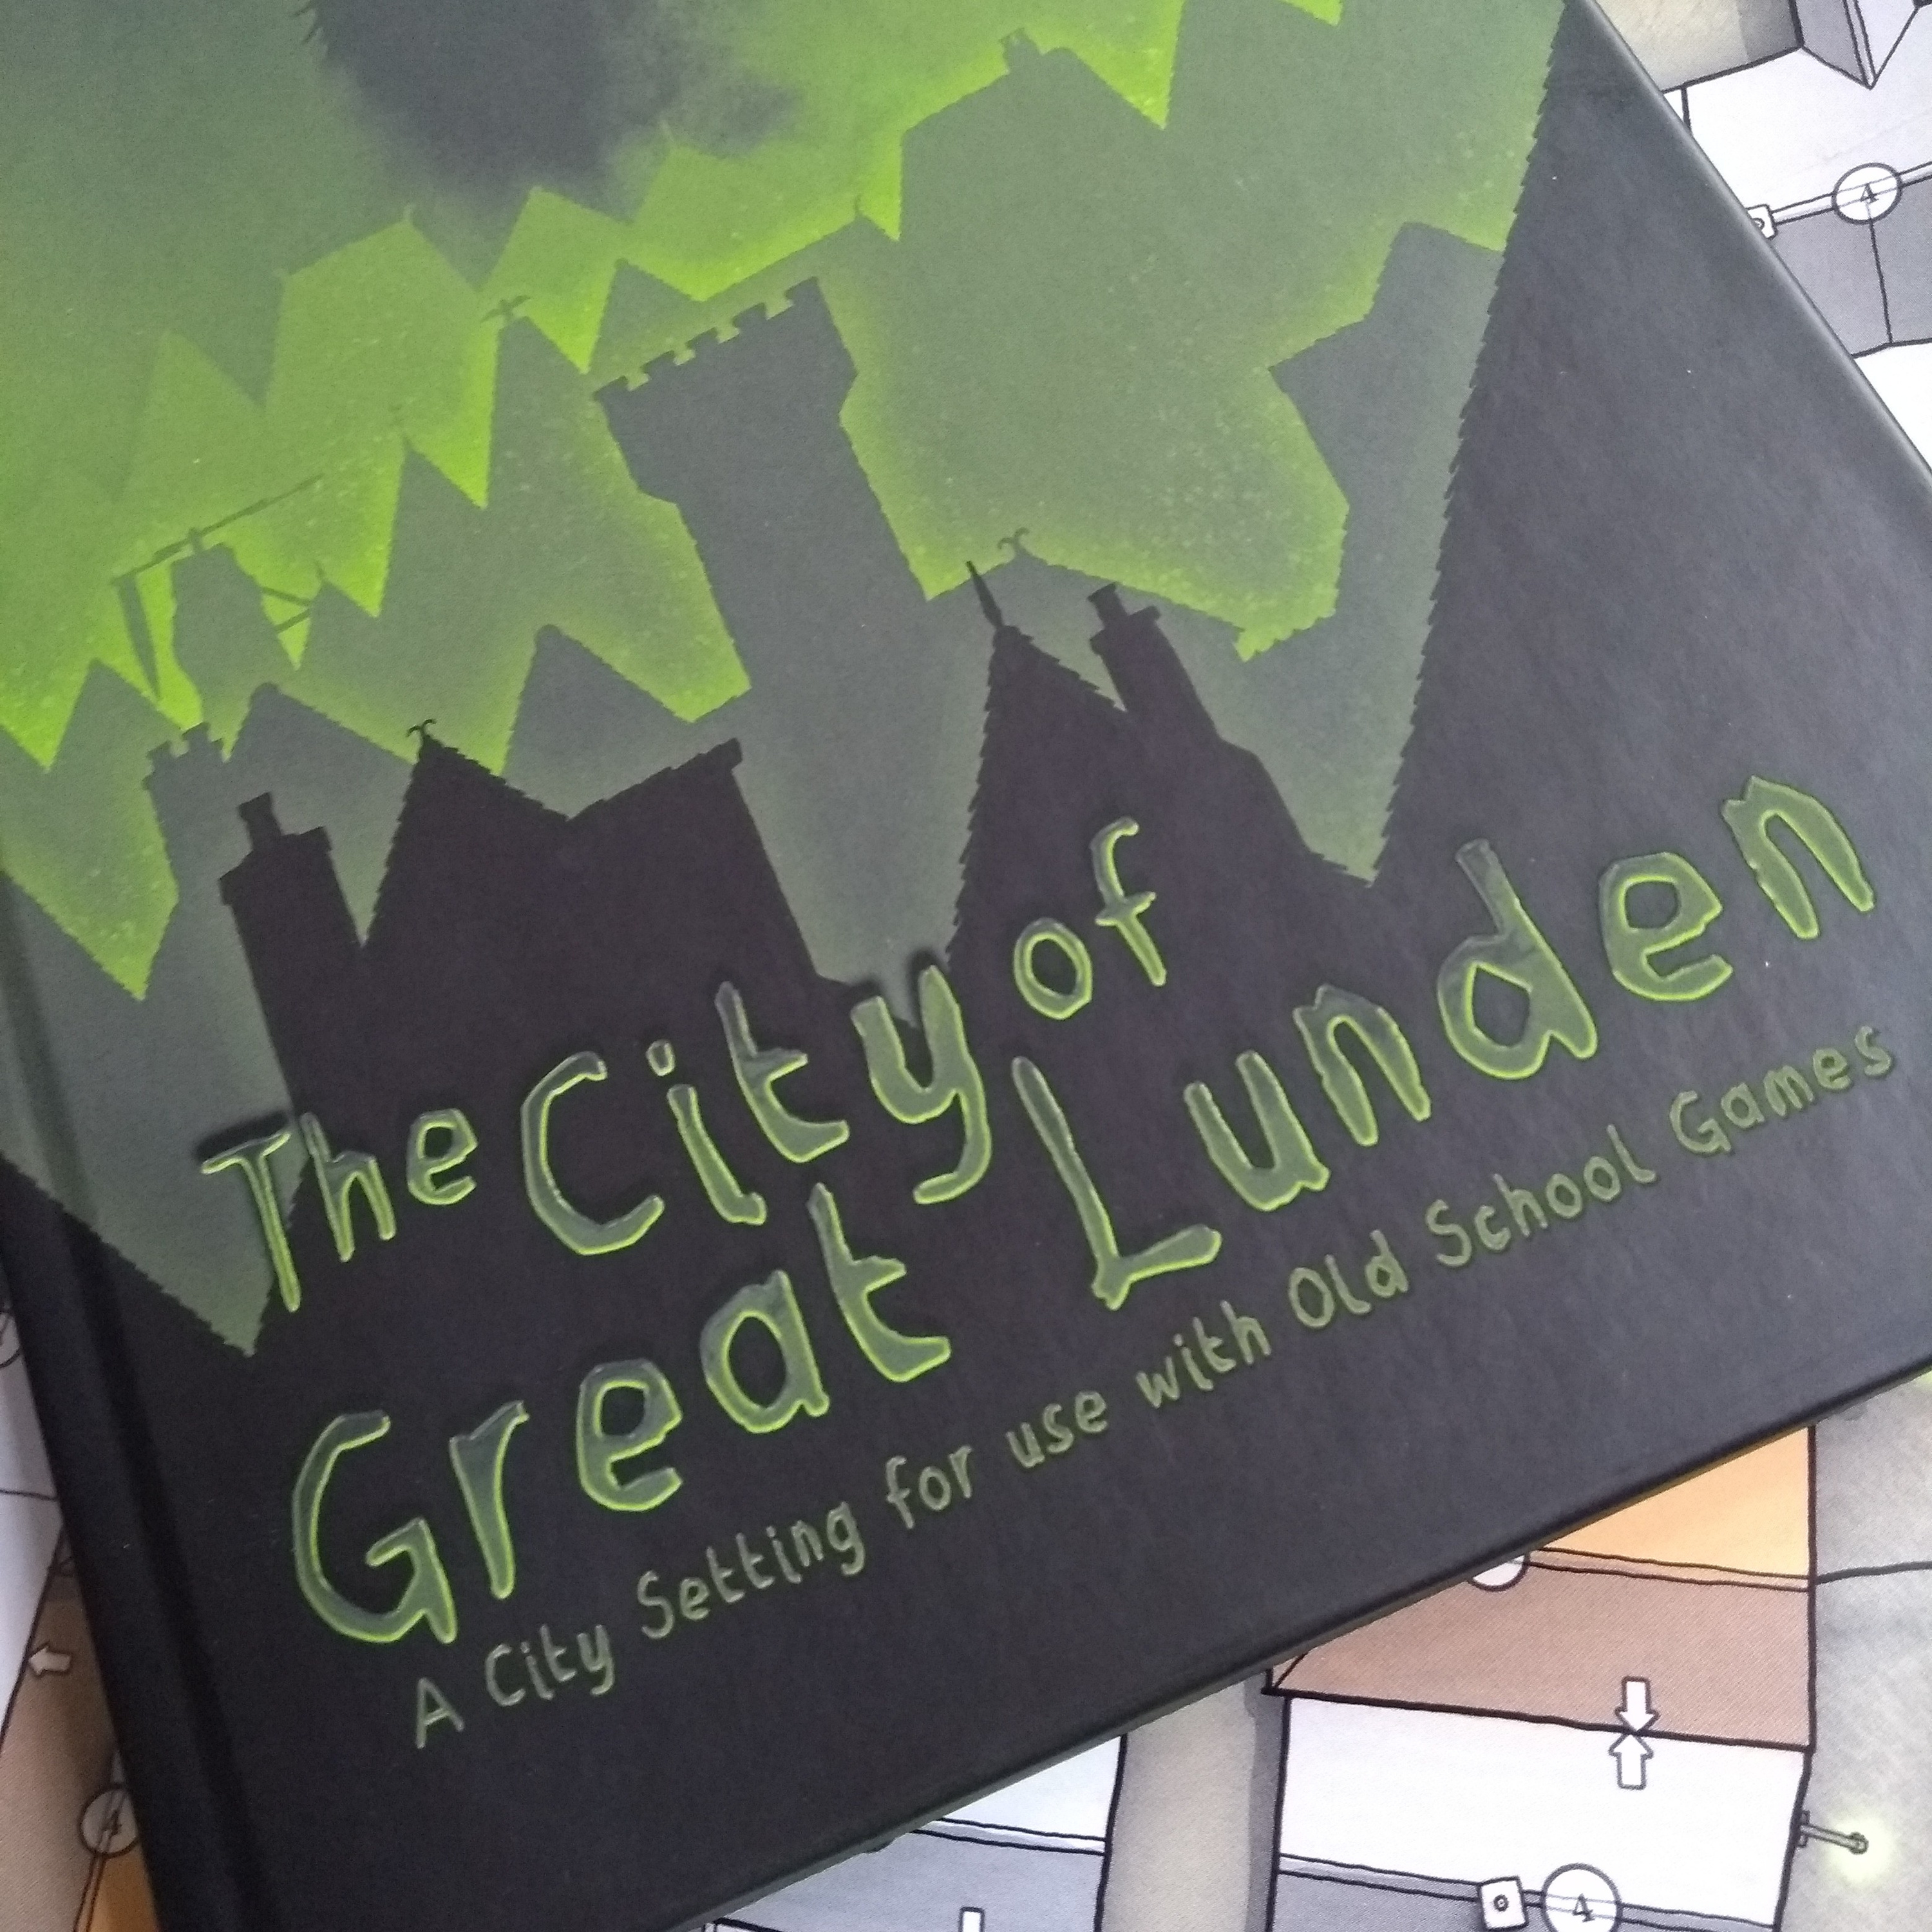 172 The City of Great Lunden - Unboxing and Initial Impressions.